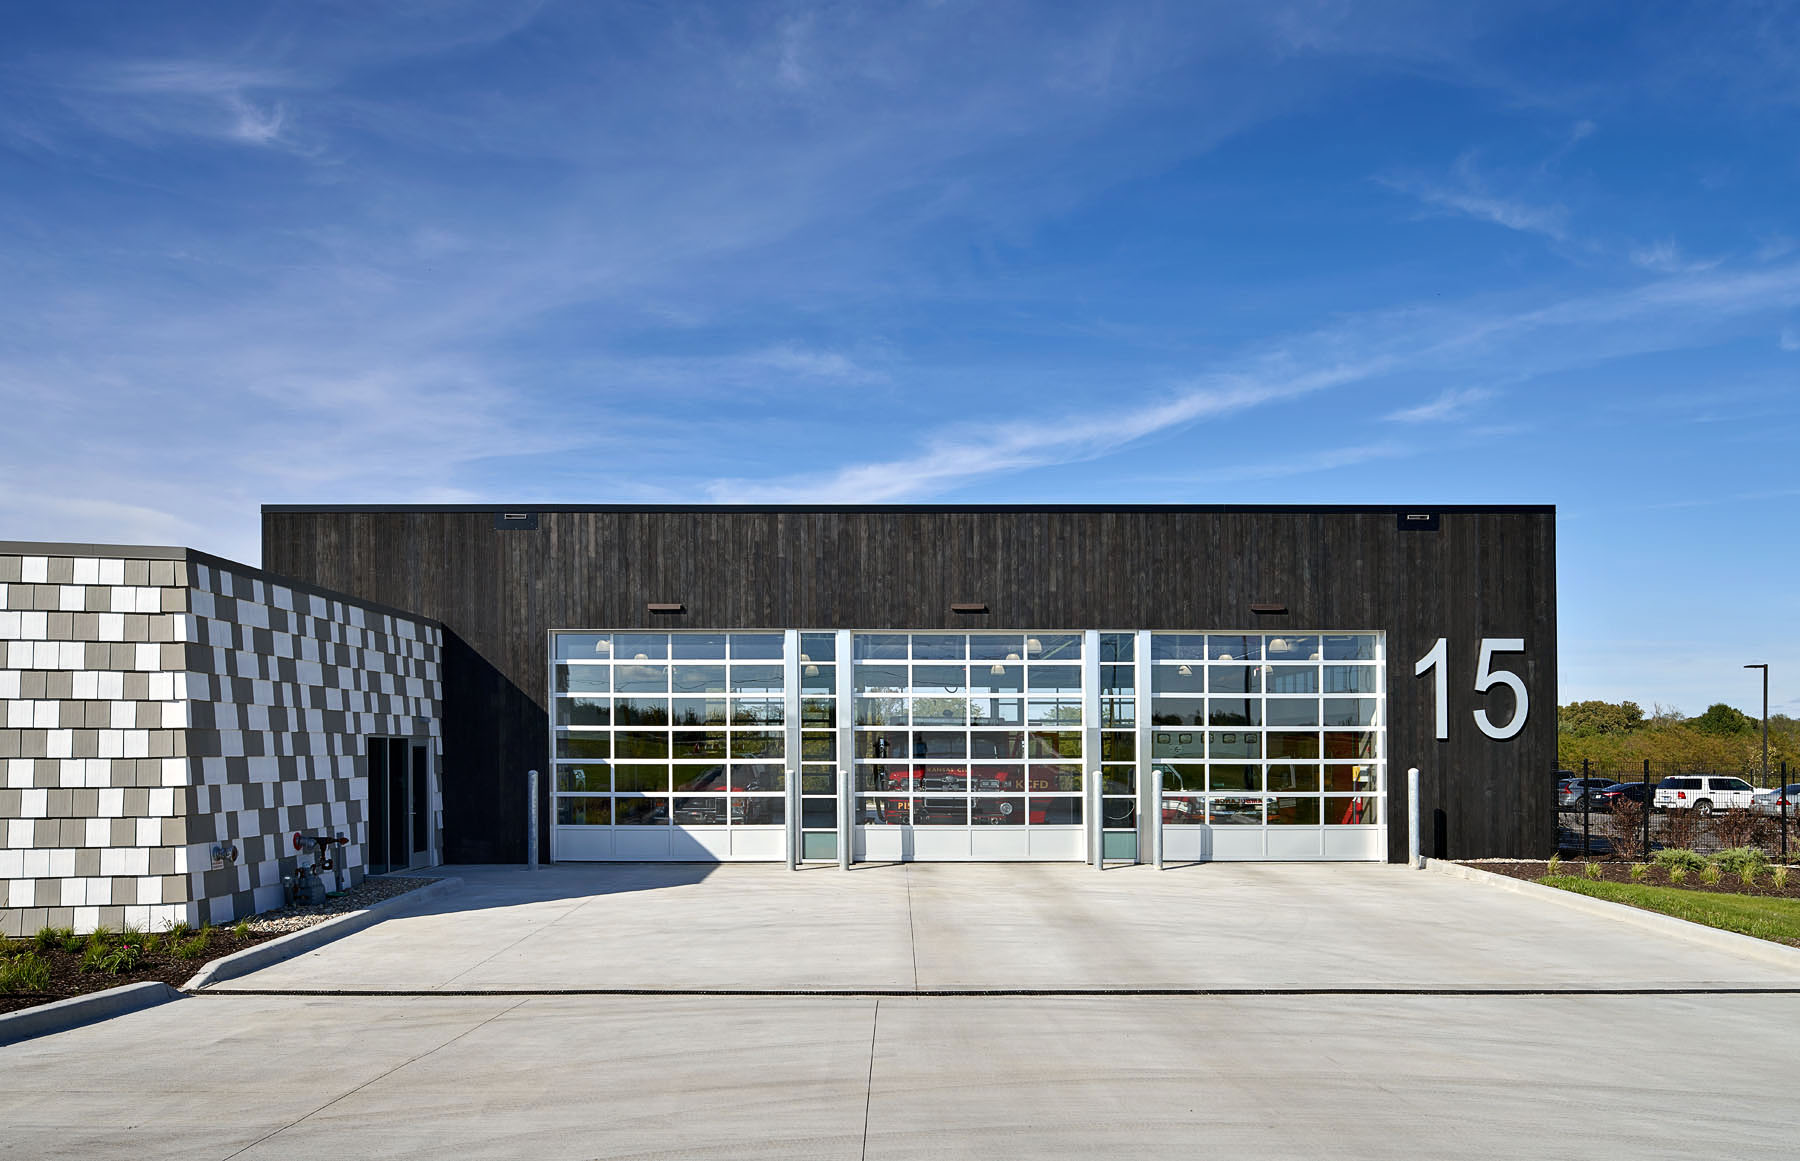 DRAWArch_FireStation15_0215_LR